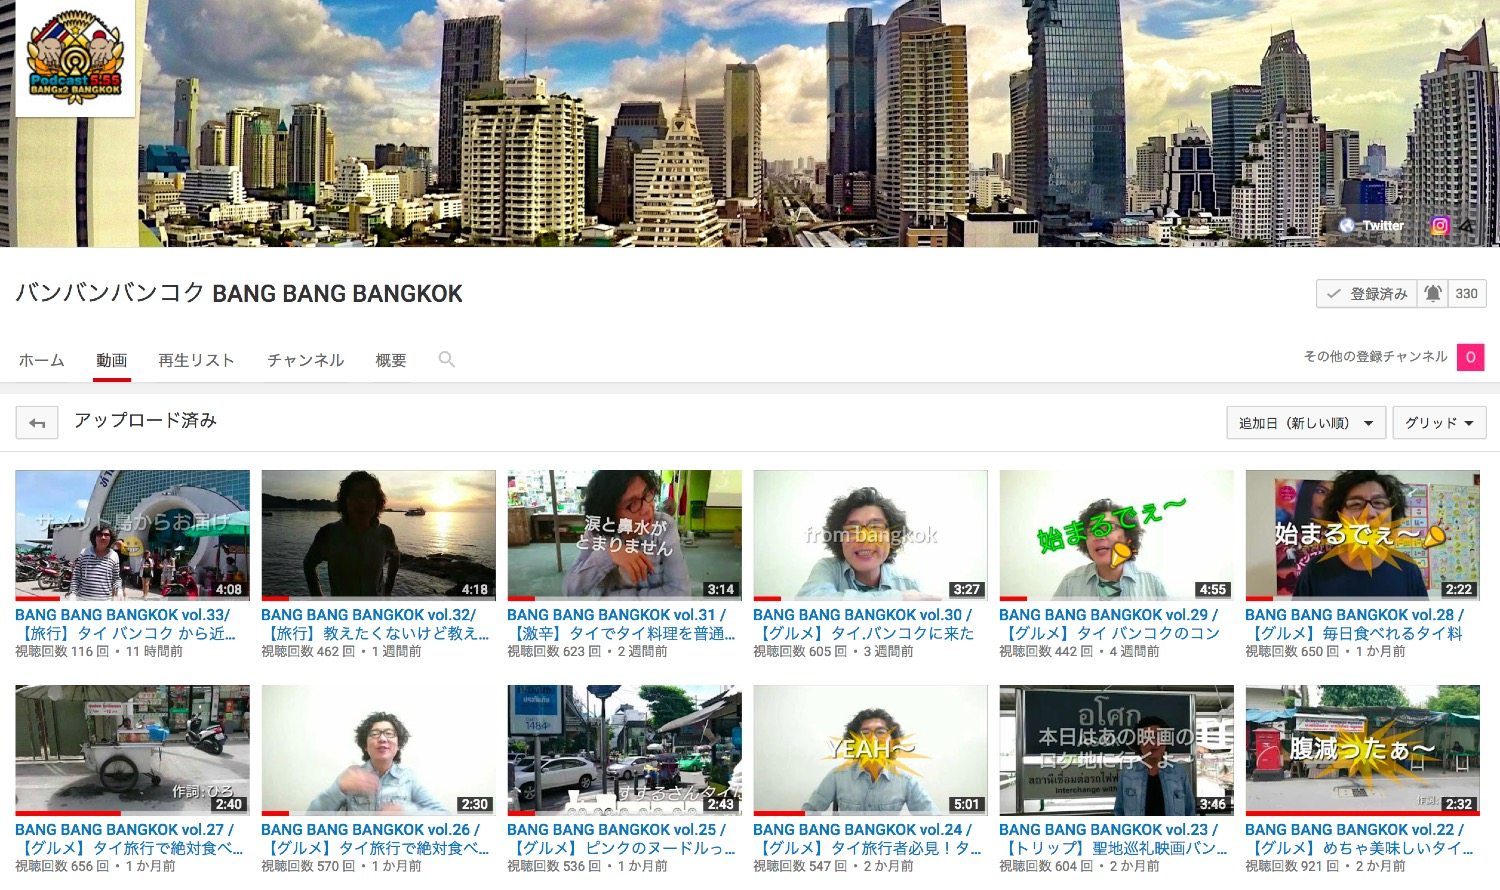 BANG BANG BANGKOK on YOUTUBE